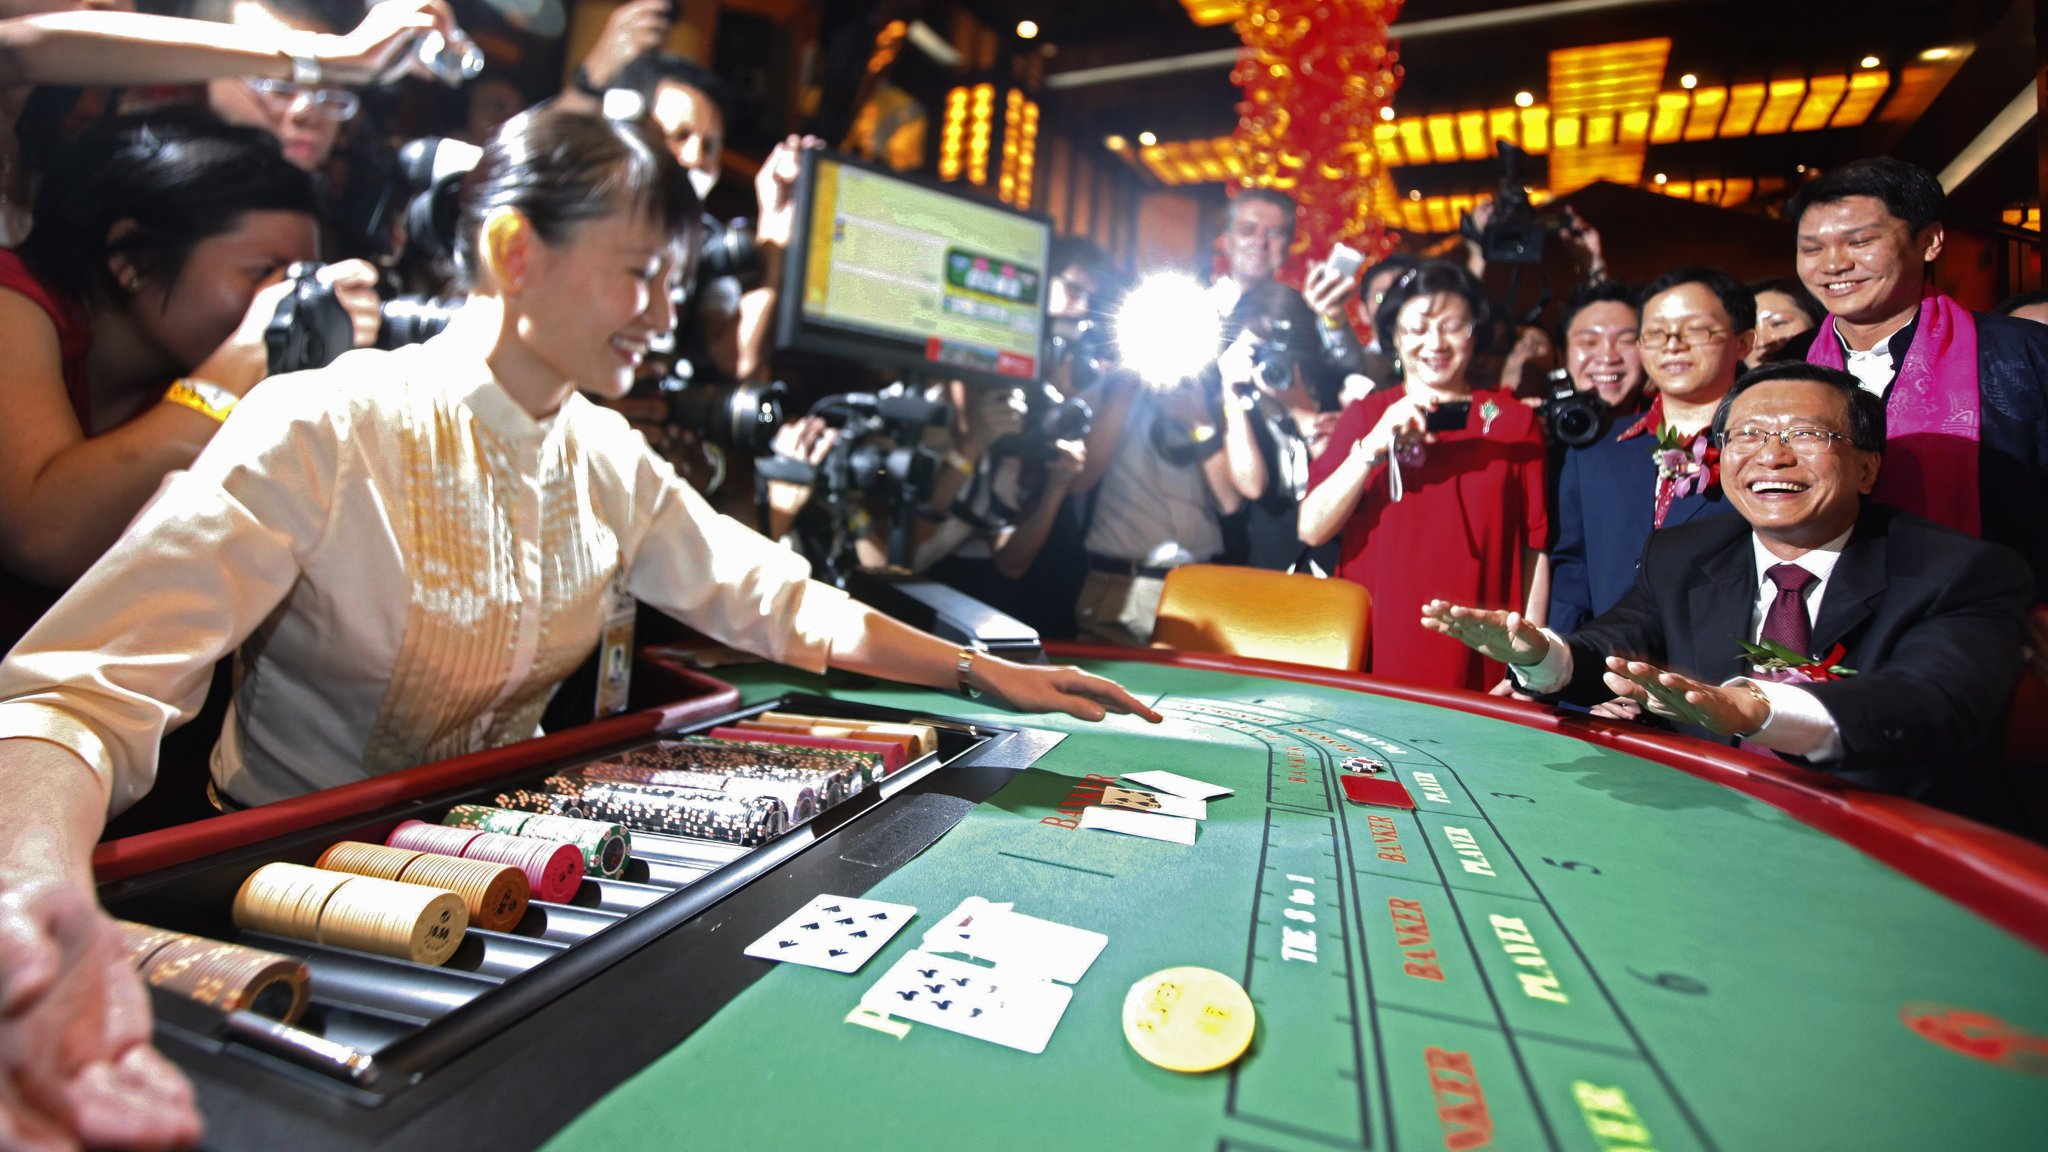 Betting in Singapore: Things to Be Aware of Before Going